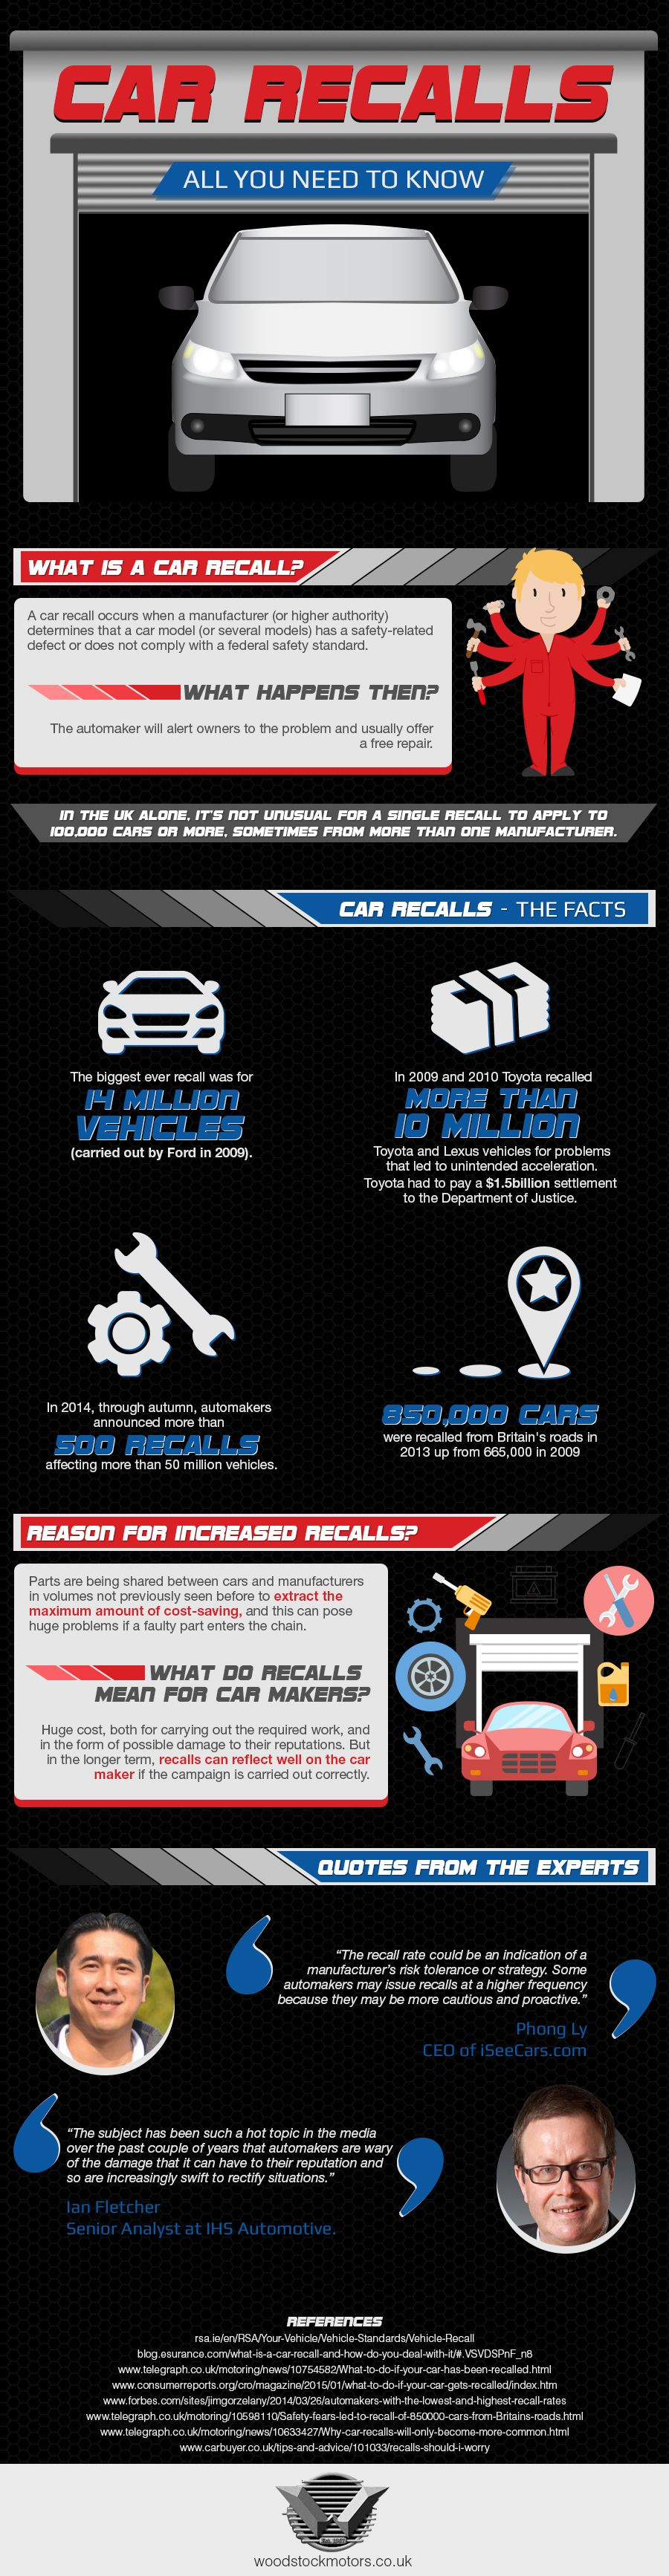 Car Recalls Infographic